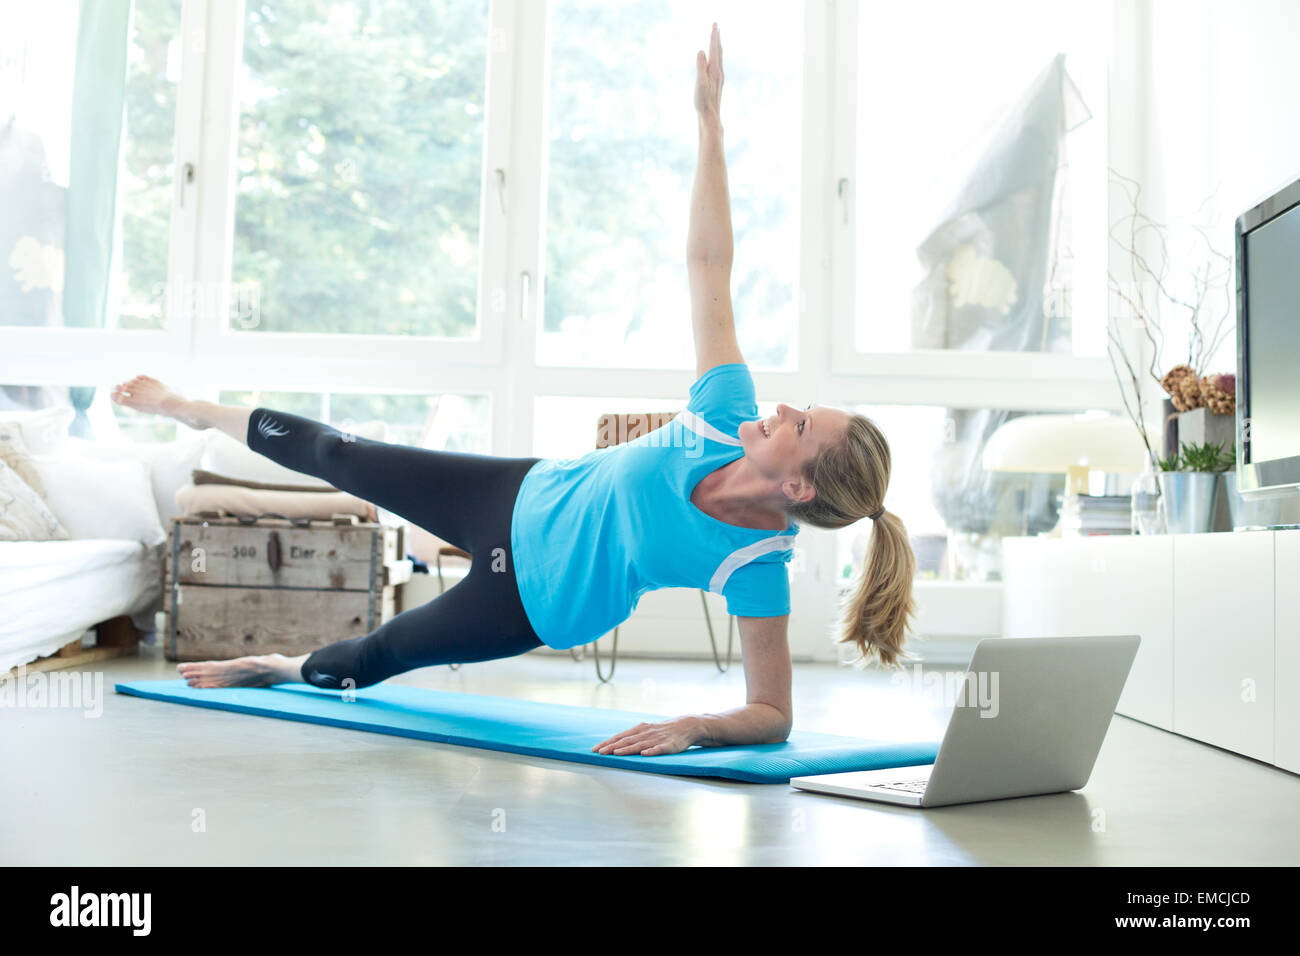 Woman with laptop exercising on gym mat in living room stock photo